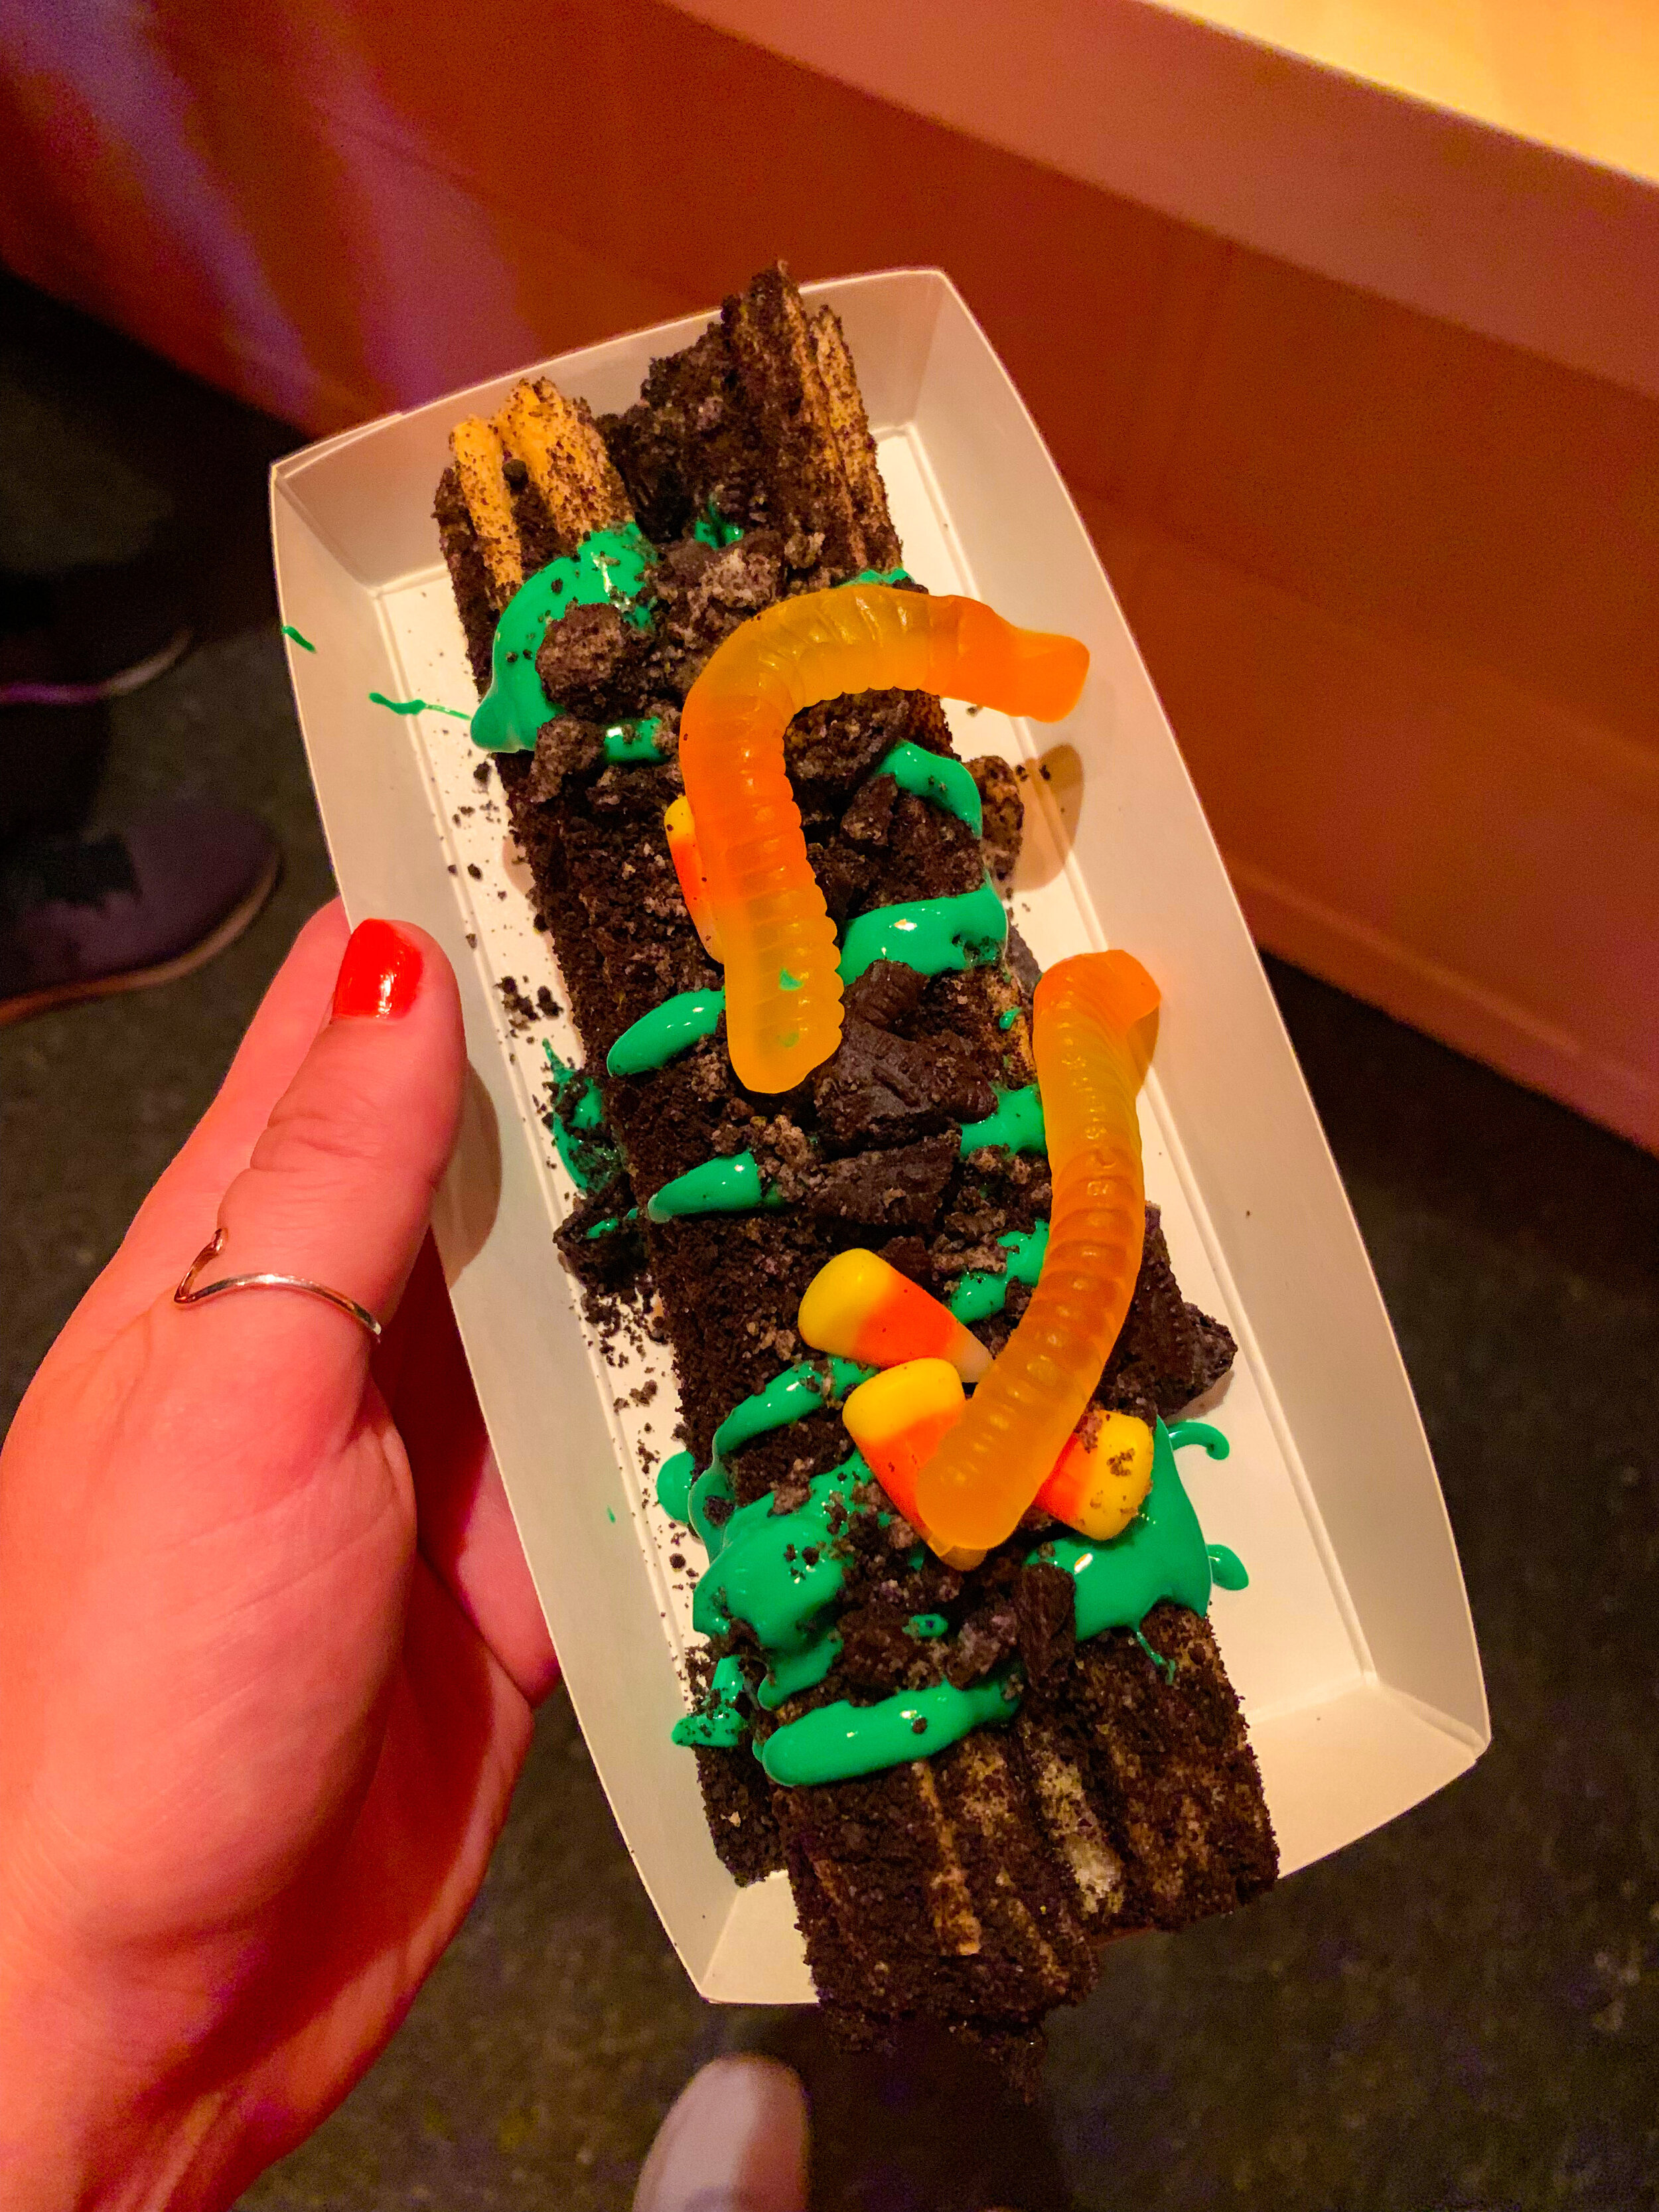 Haul-O-Ween Churro,  a churro rolled in Oreos, green icing, gummy worms, and candies